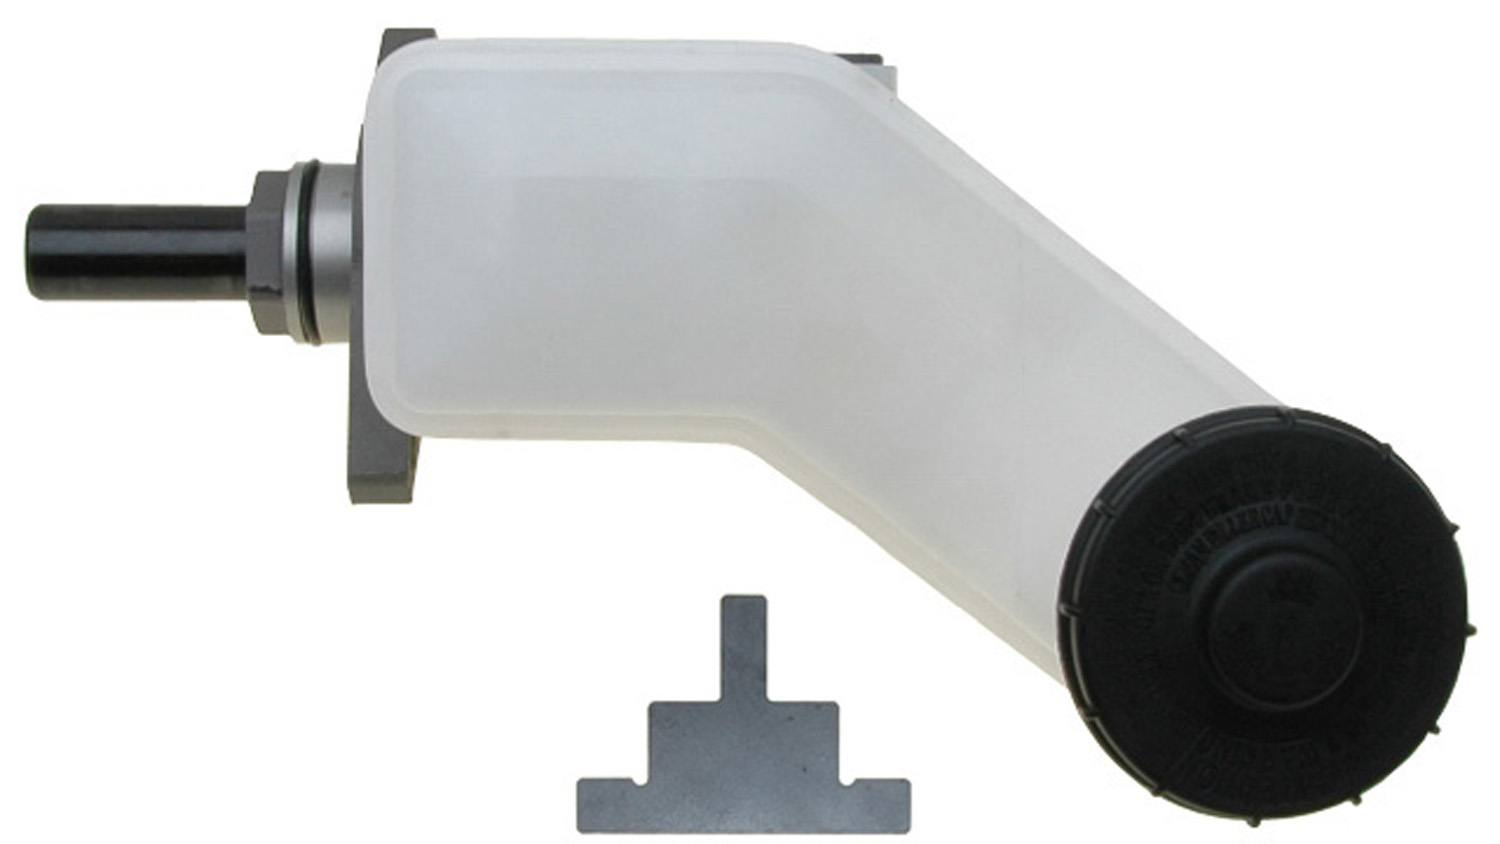 ACDELCO PROFESSIONAL DURASTOP CANADA - Brake Master Cylinder - DCO 18M2483